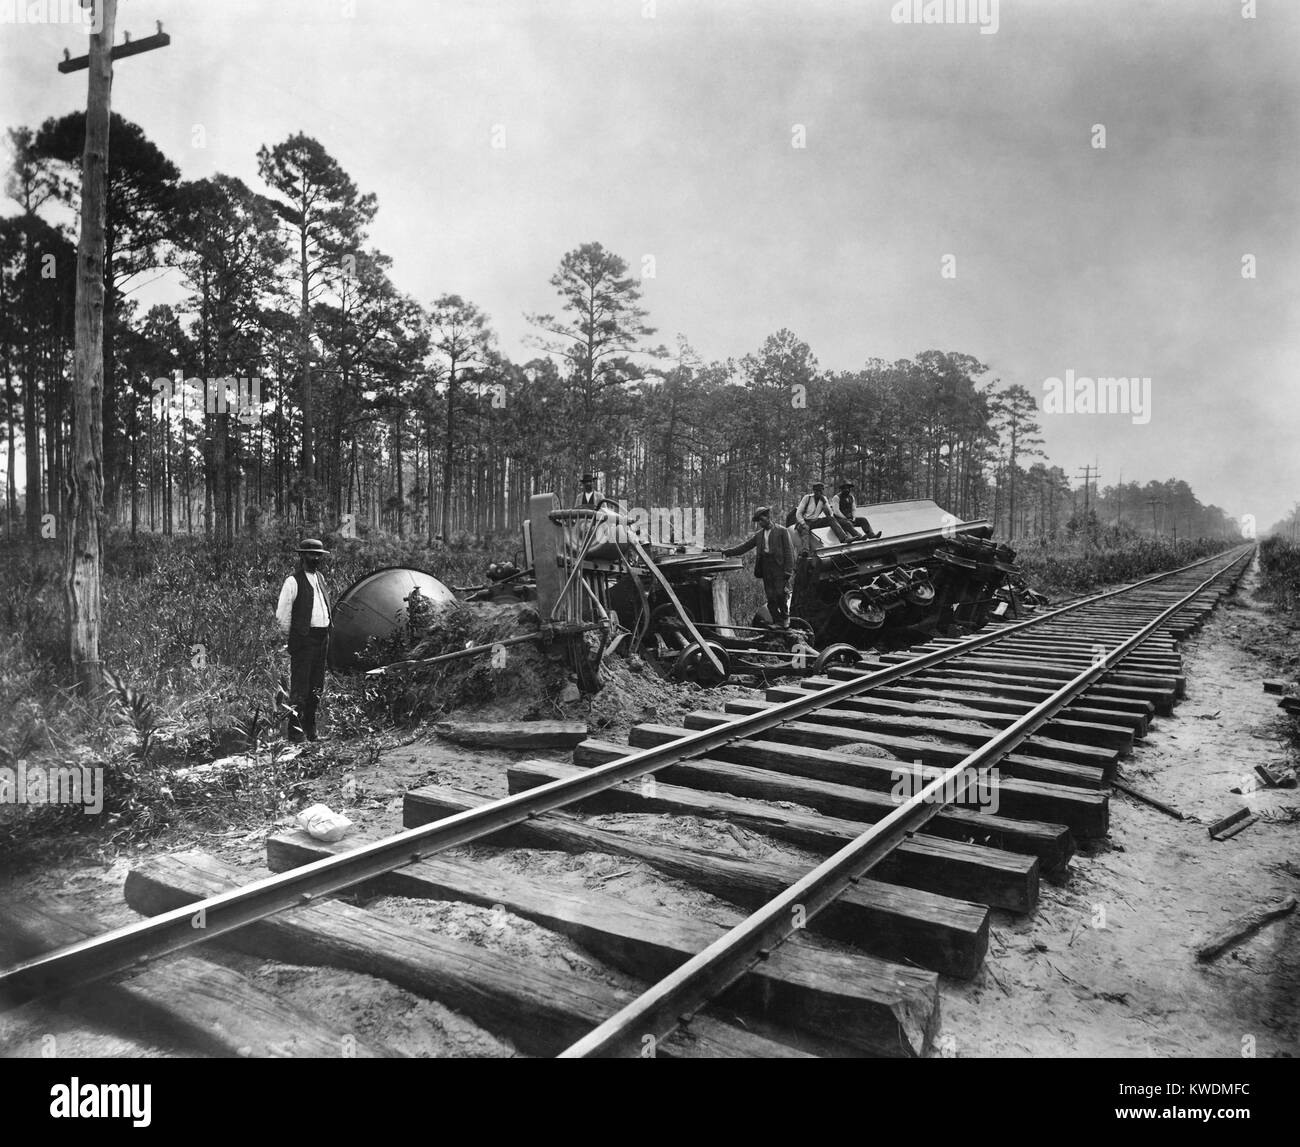 Locomotive derailed on Ten Mile Hill by the Charleston earthquake of August 31, 1886 (BSLOC_2017_17_59) - Stock Image